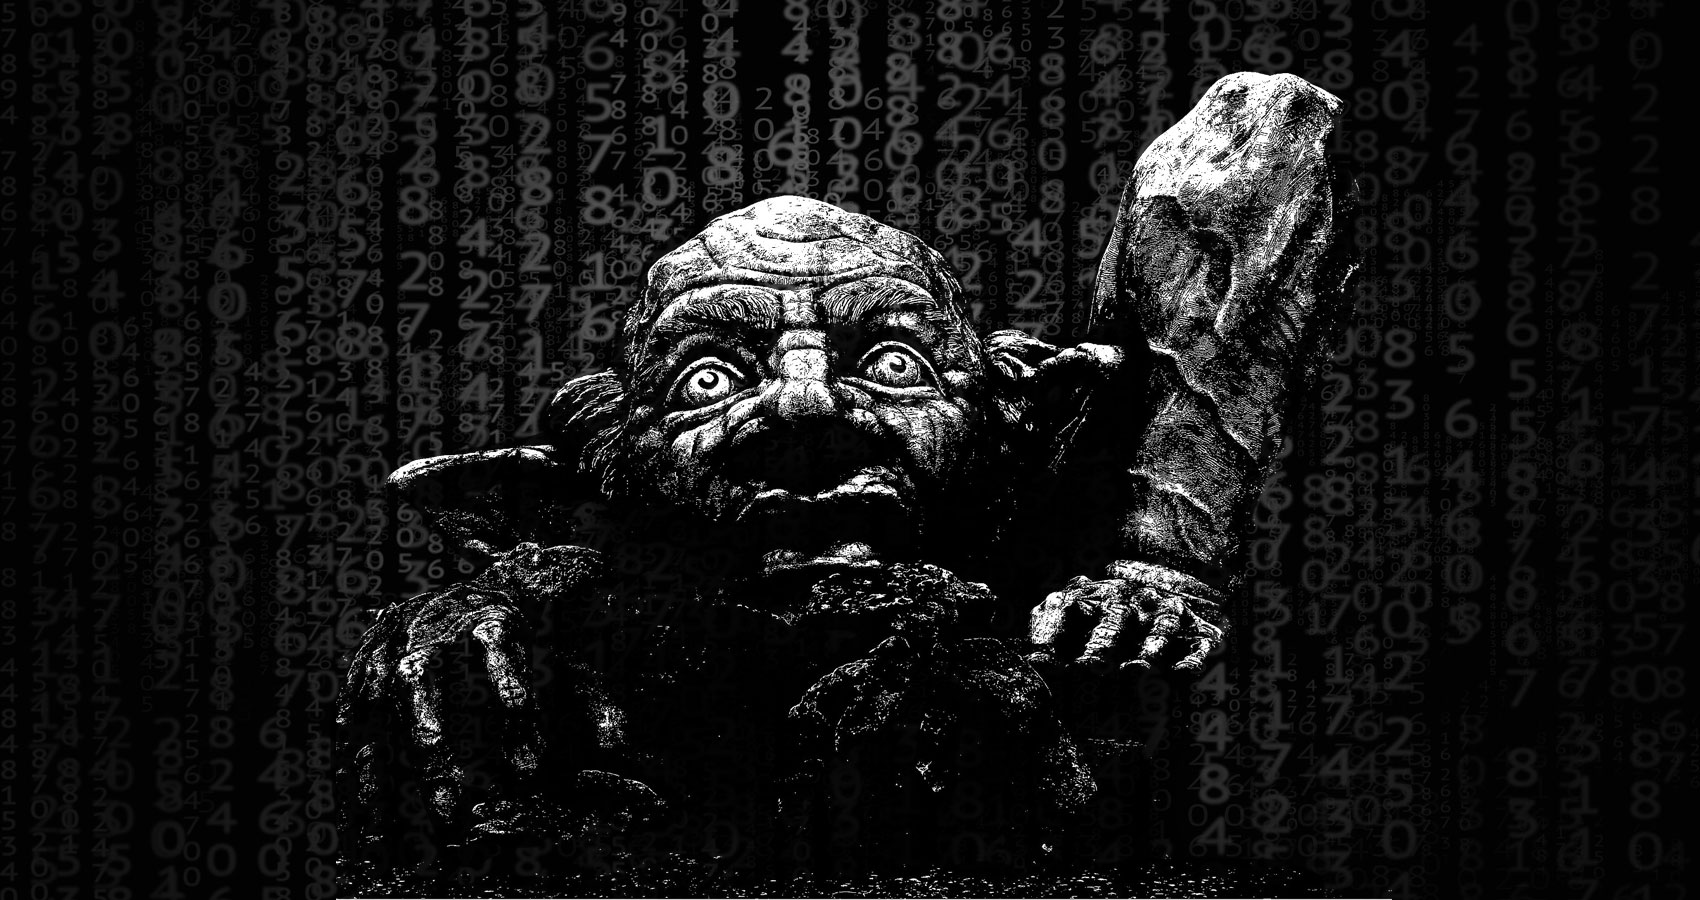 THE TROLL written by Dilip Mohapatra at Spillwords.com